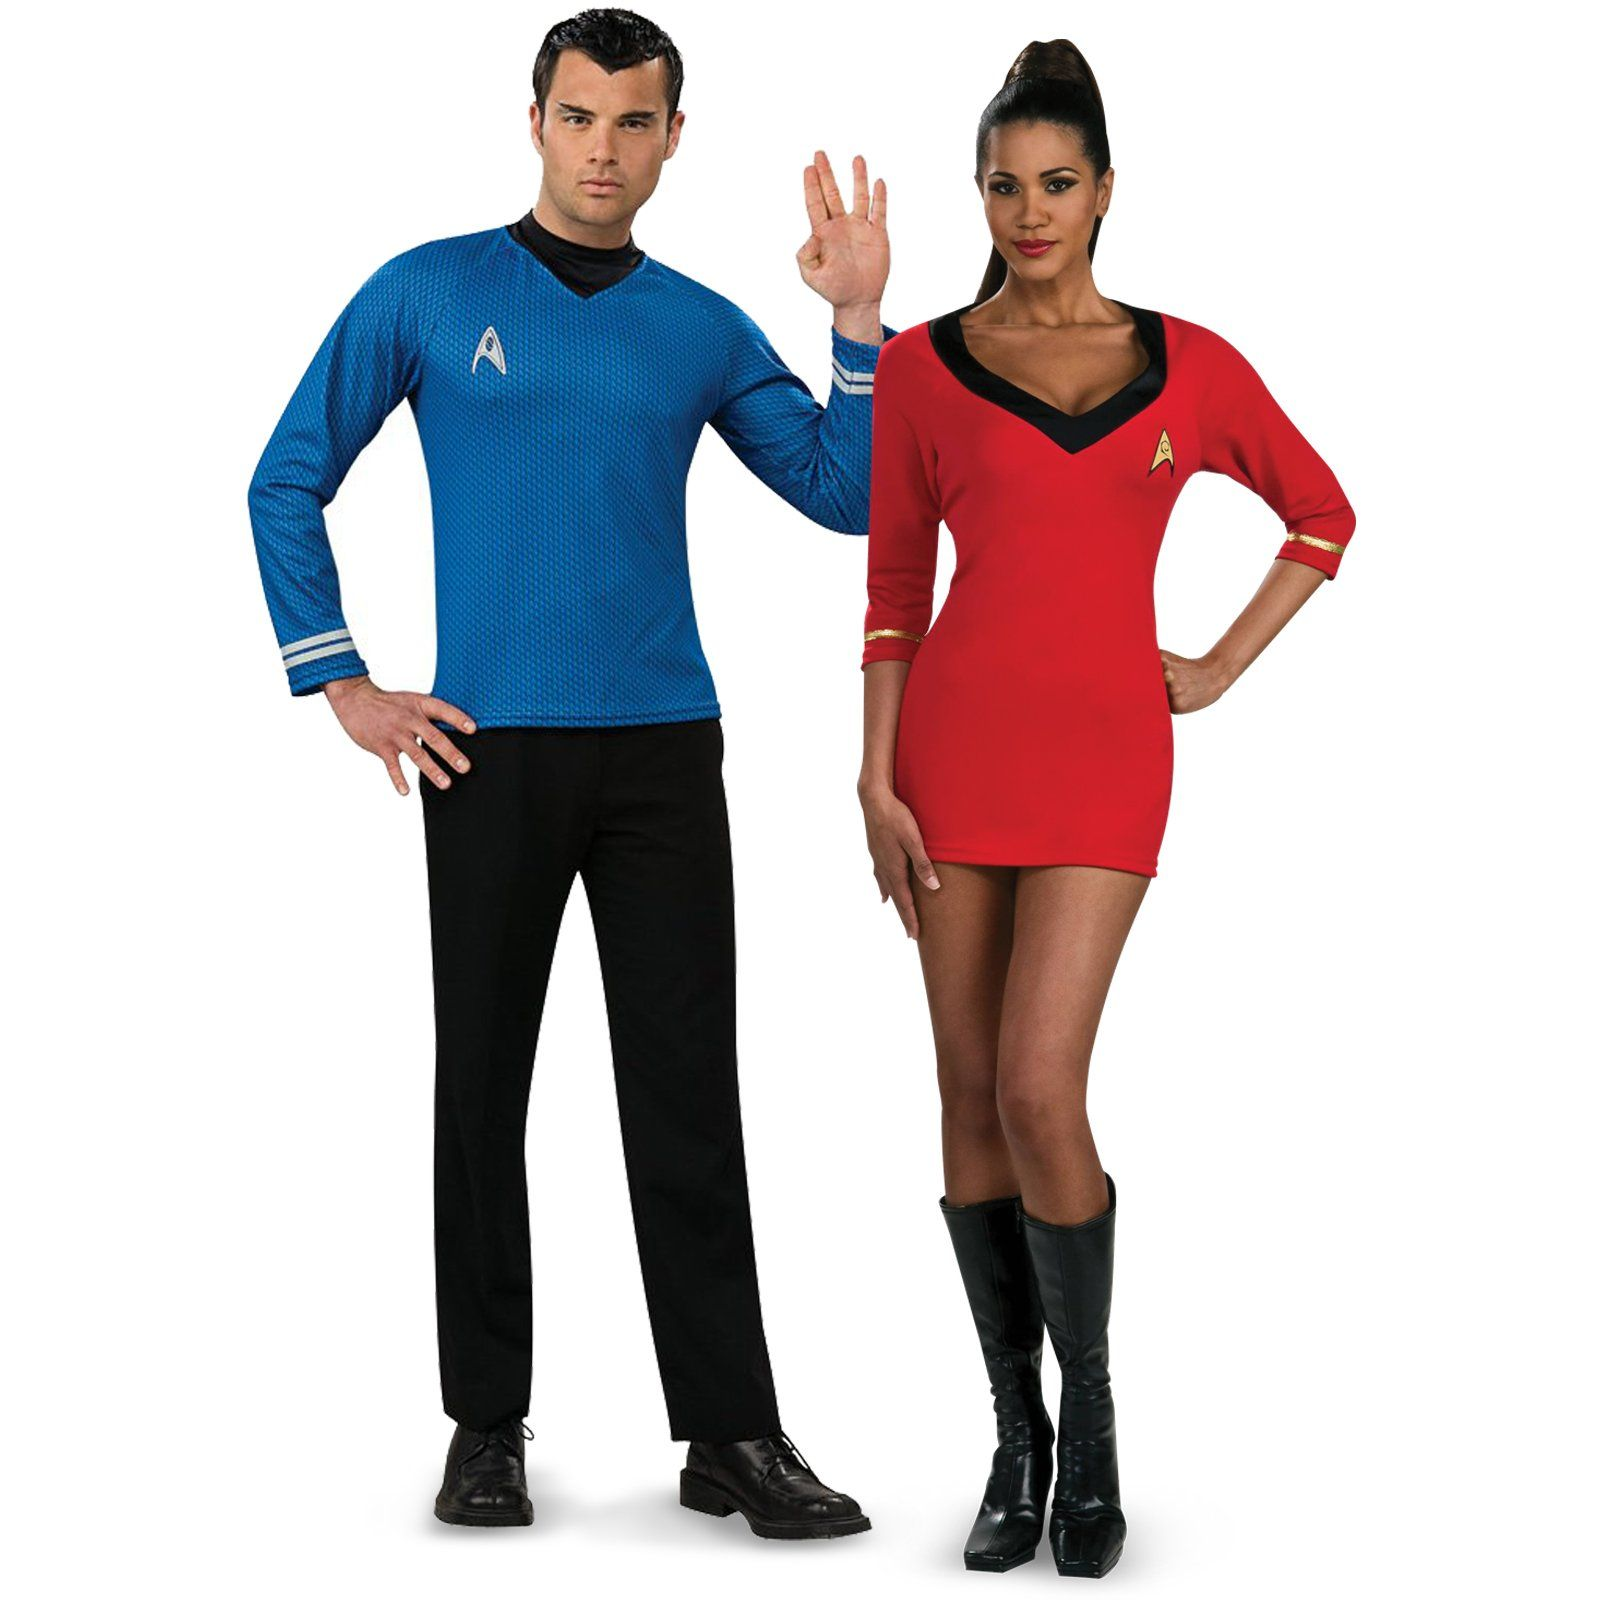 star trek movie blue shirt adult costume | pinterest | costumes